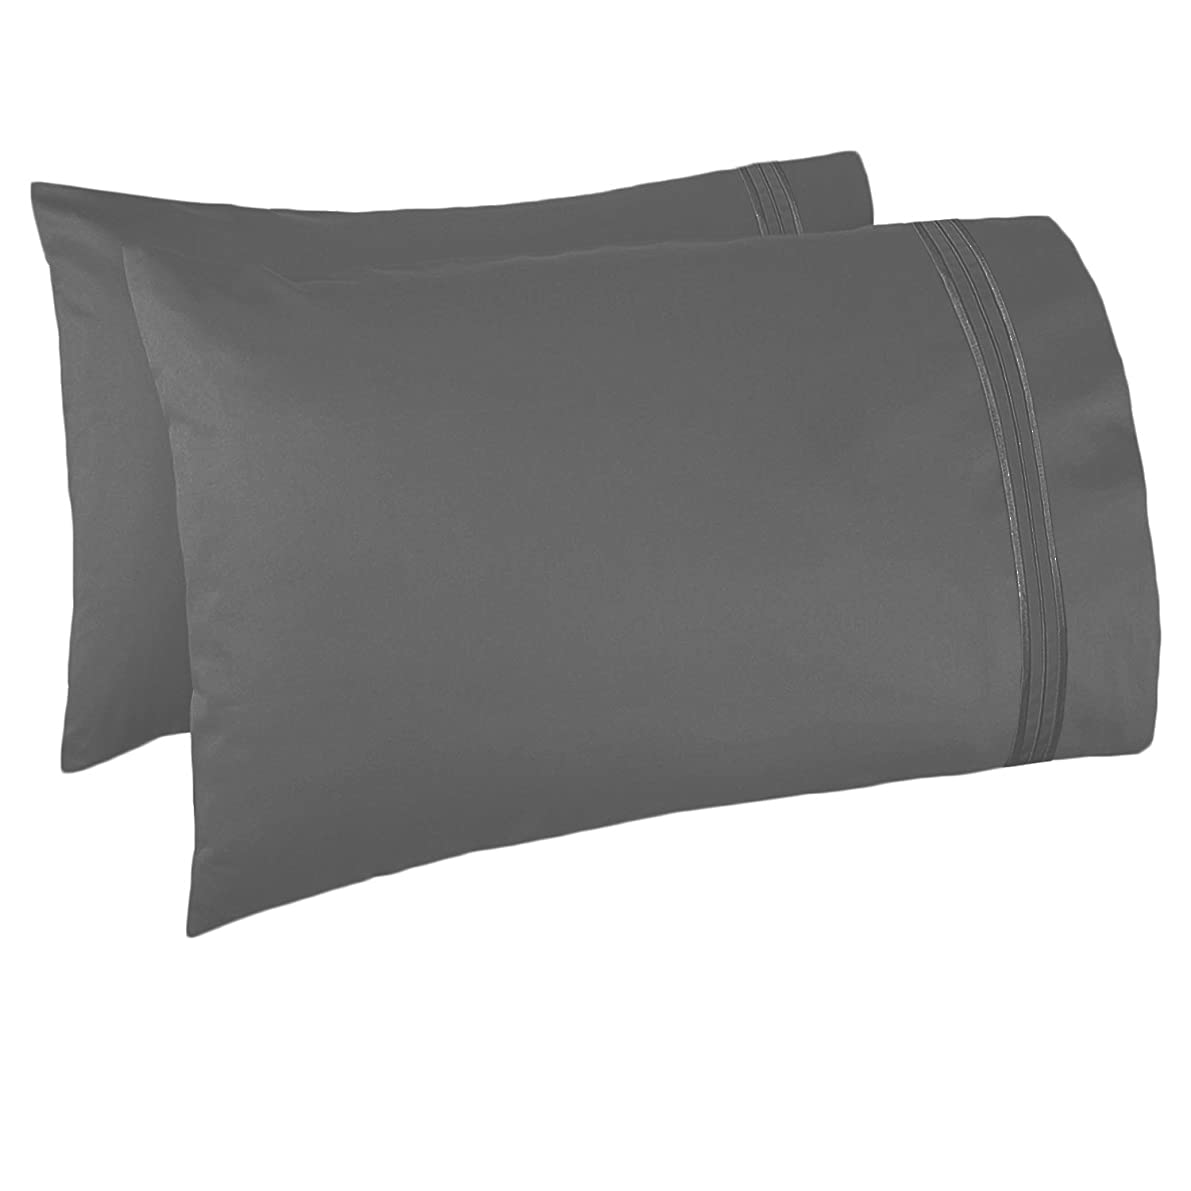 Nestl Bedding Soft Pillow Case Set of 2 - Double Brushed Microfiber Hypoallergenic Pillow Covers - 1800 Series Premium Bed Pillow Cases, Standard/Queen - Charcoal Grey